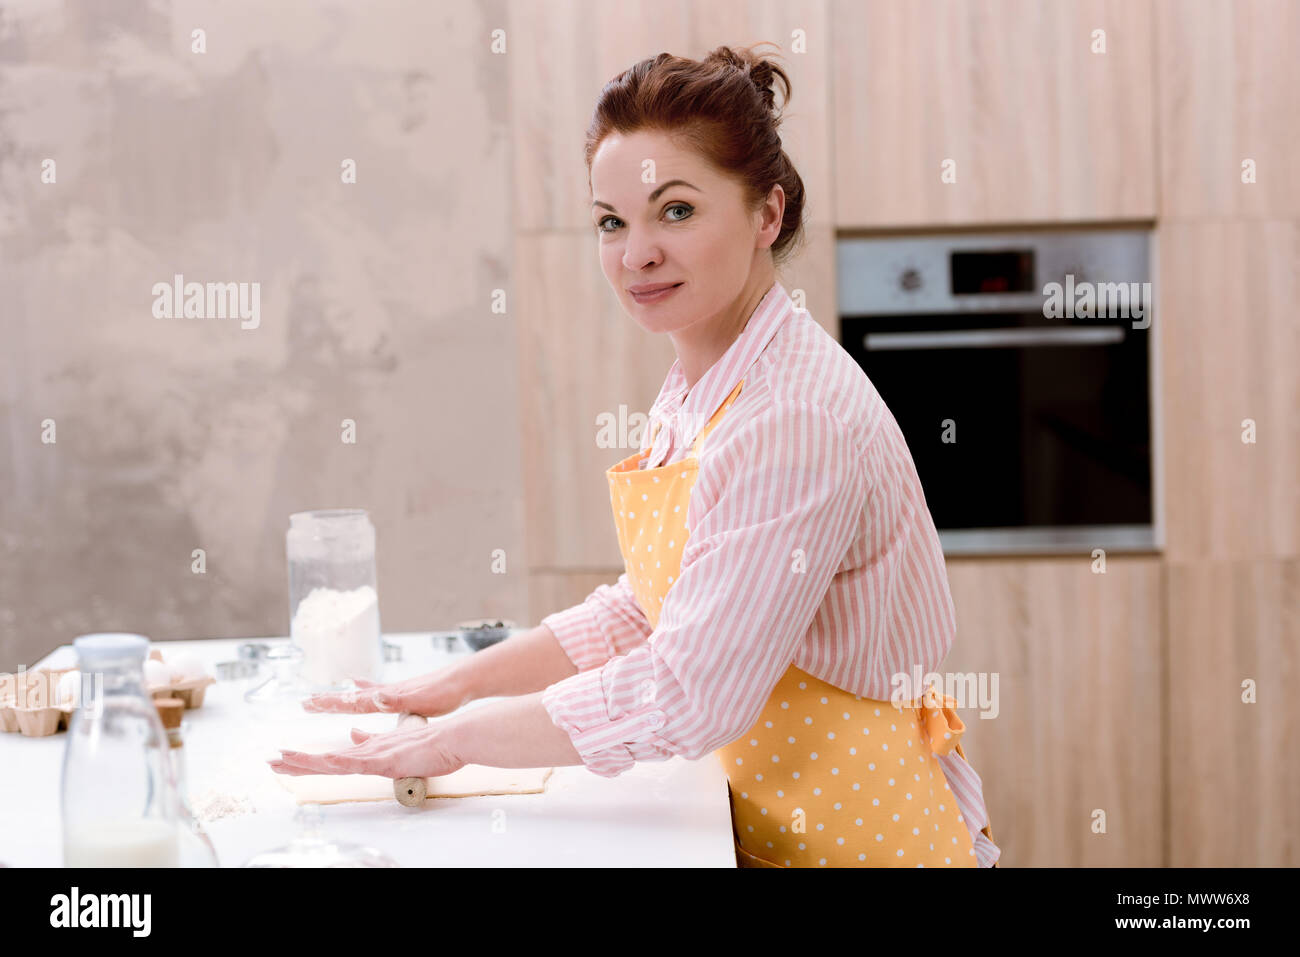 beautiful mature woman rolling dough for pastry at kitchen - Stock Image